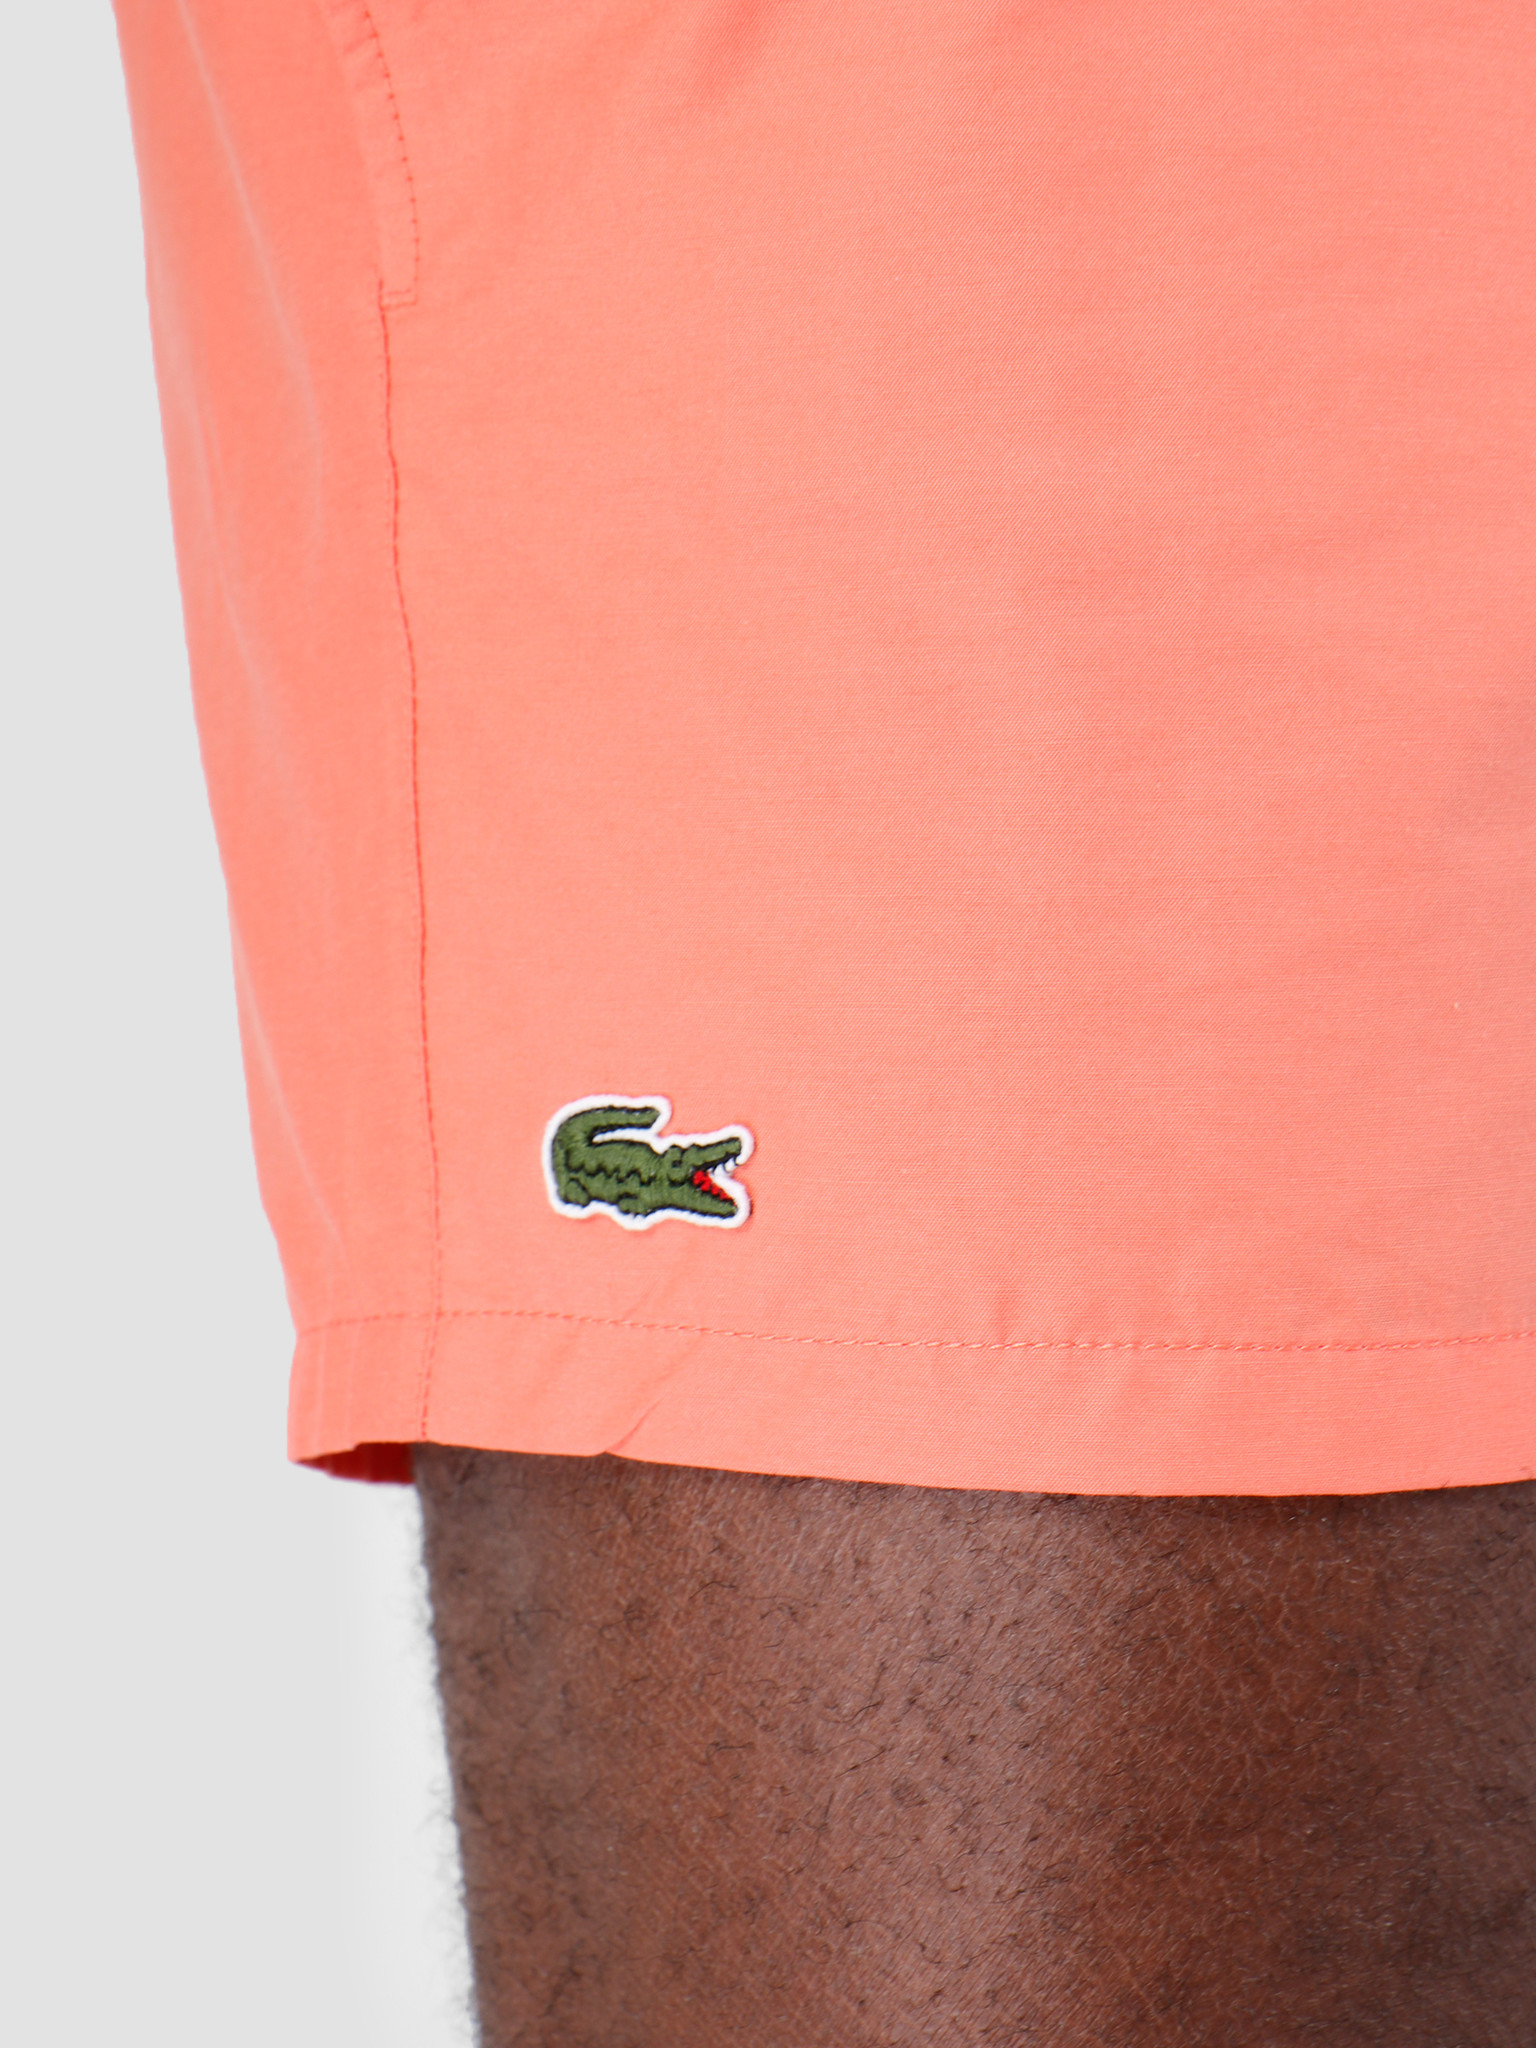 Lacoste Lacoste 1Hm1 Men'S Swimming Trunks 01 Dianthus Aquarium Mh7092-91